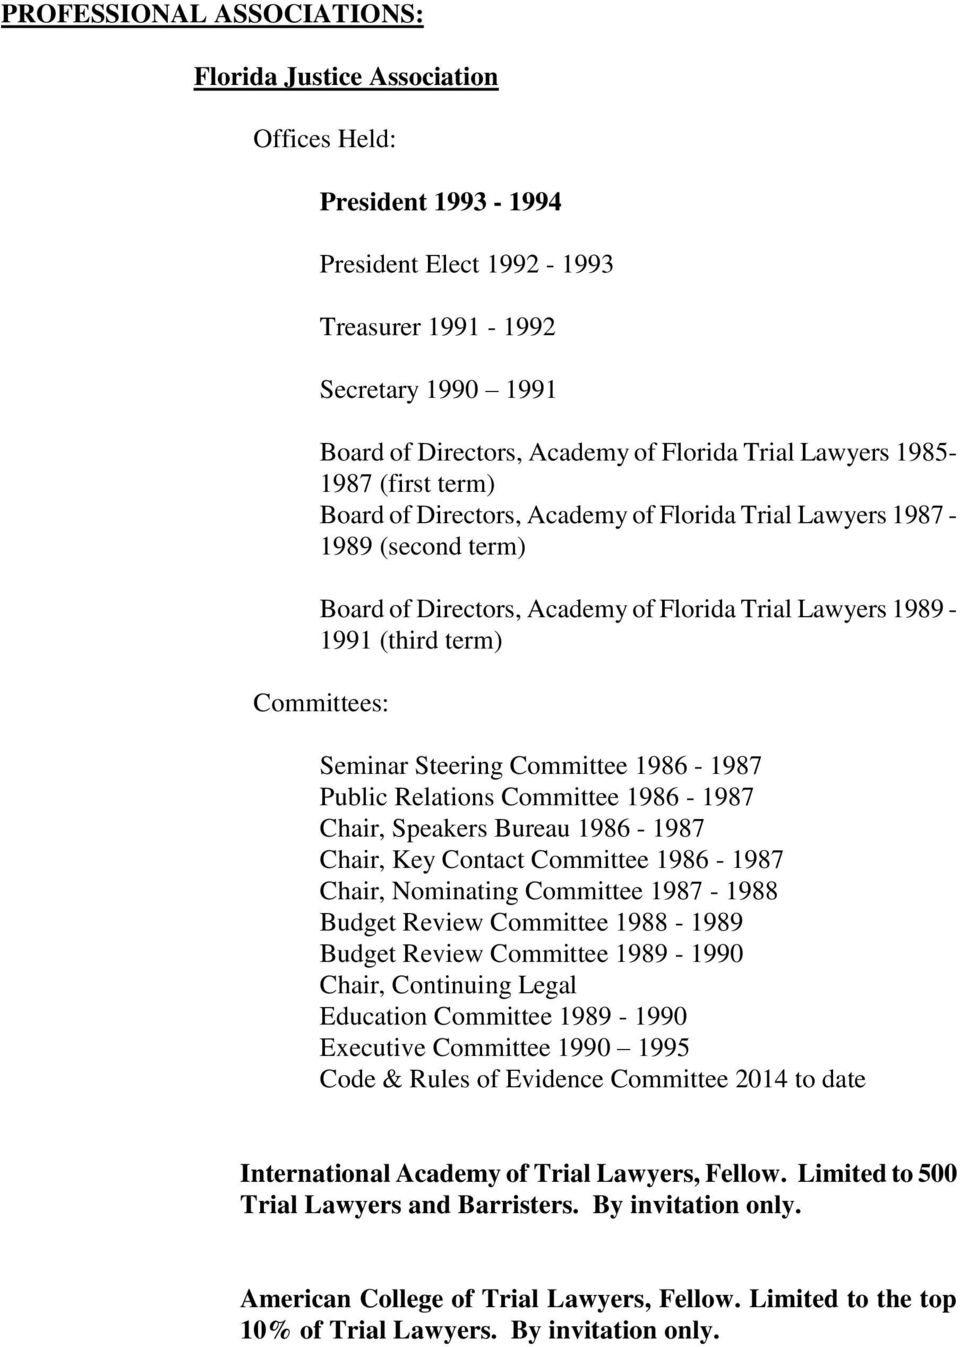 Seminar Steering Committee 1986-1987 Public Relations Committee 1986-1987 Chair, Speakers Bureau 1986-1987 Chair, Key Contact Committee 1986-1987 Chair, Nominating Committee 1987-1988 Budget Review